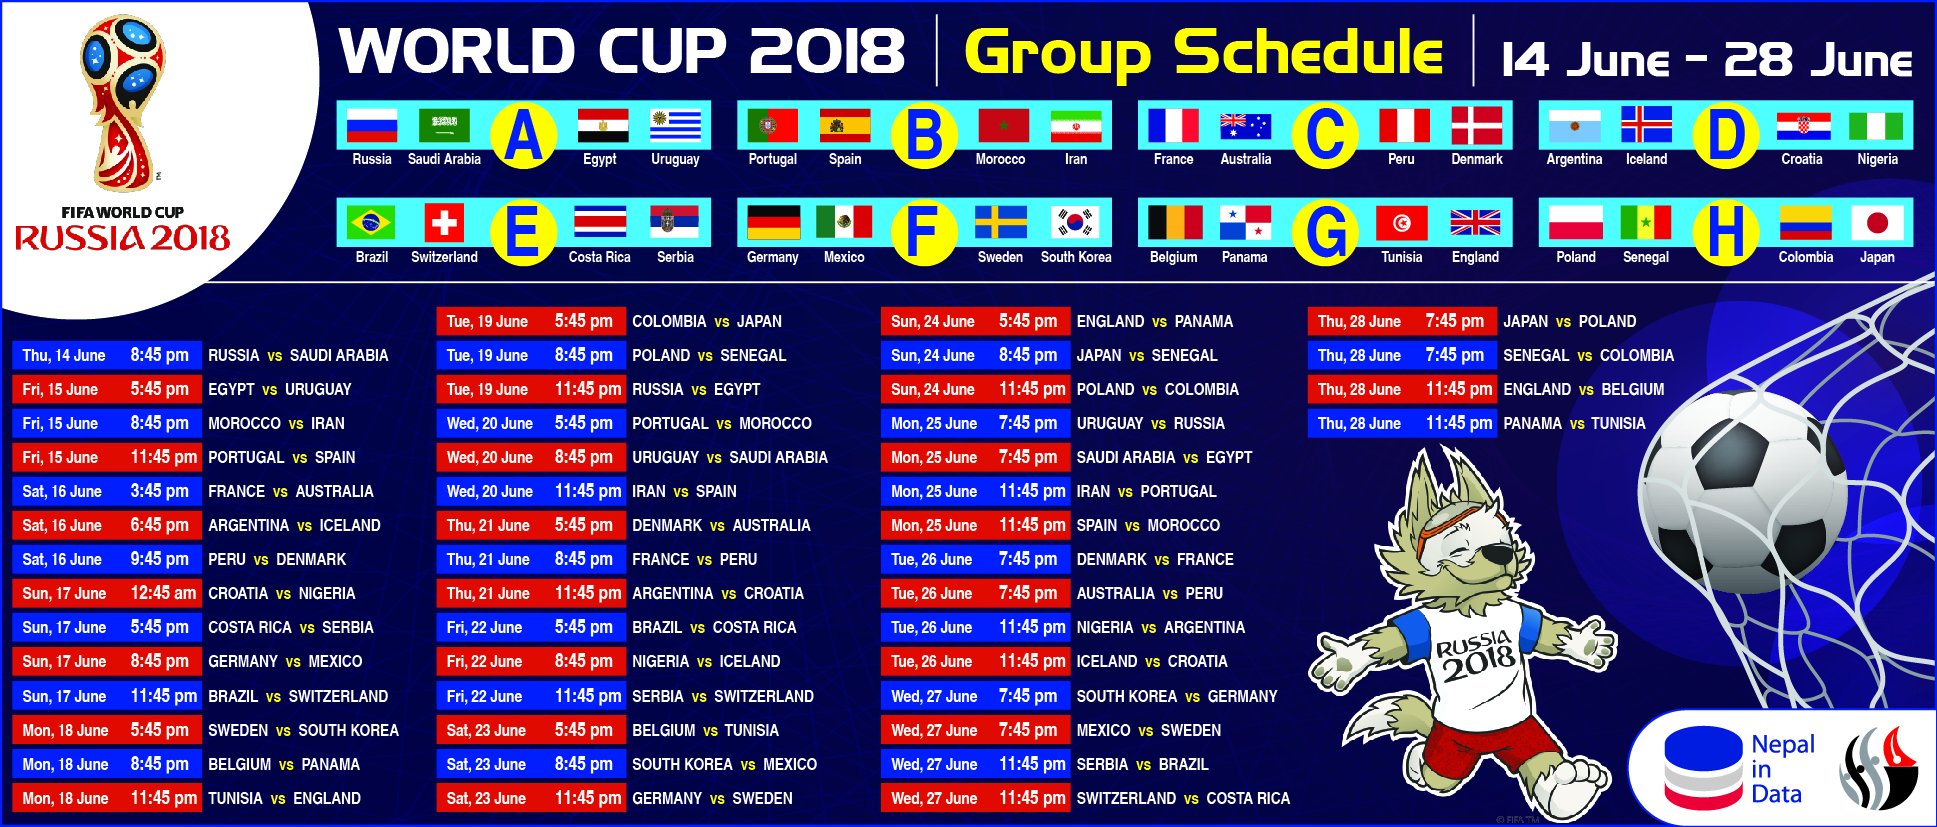 WORLD CUP 2018 GROUP SCHEDULE, 14 JUNE - 28 JUNE | NiD - Infograph